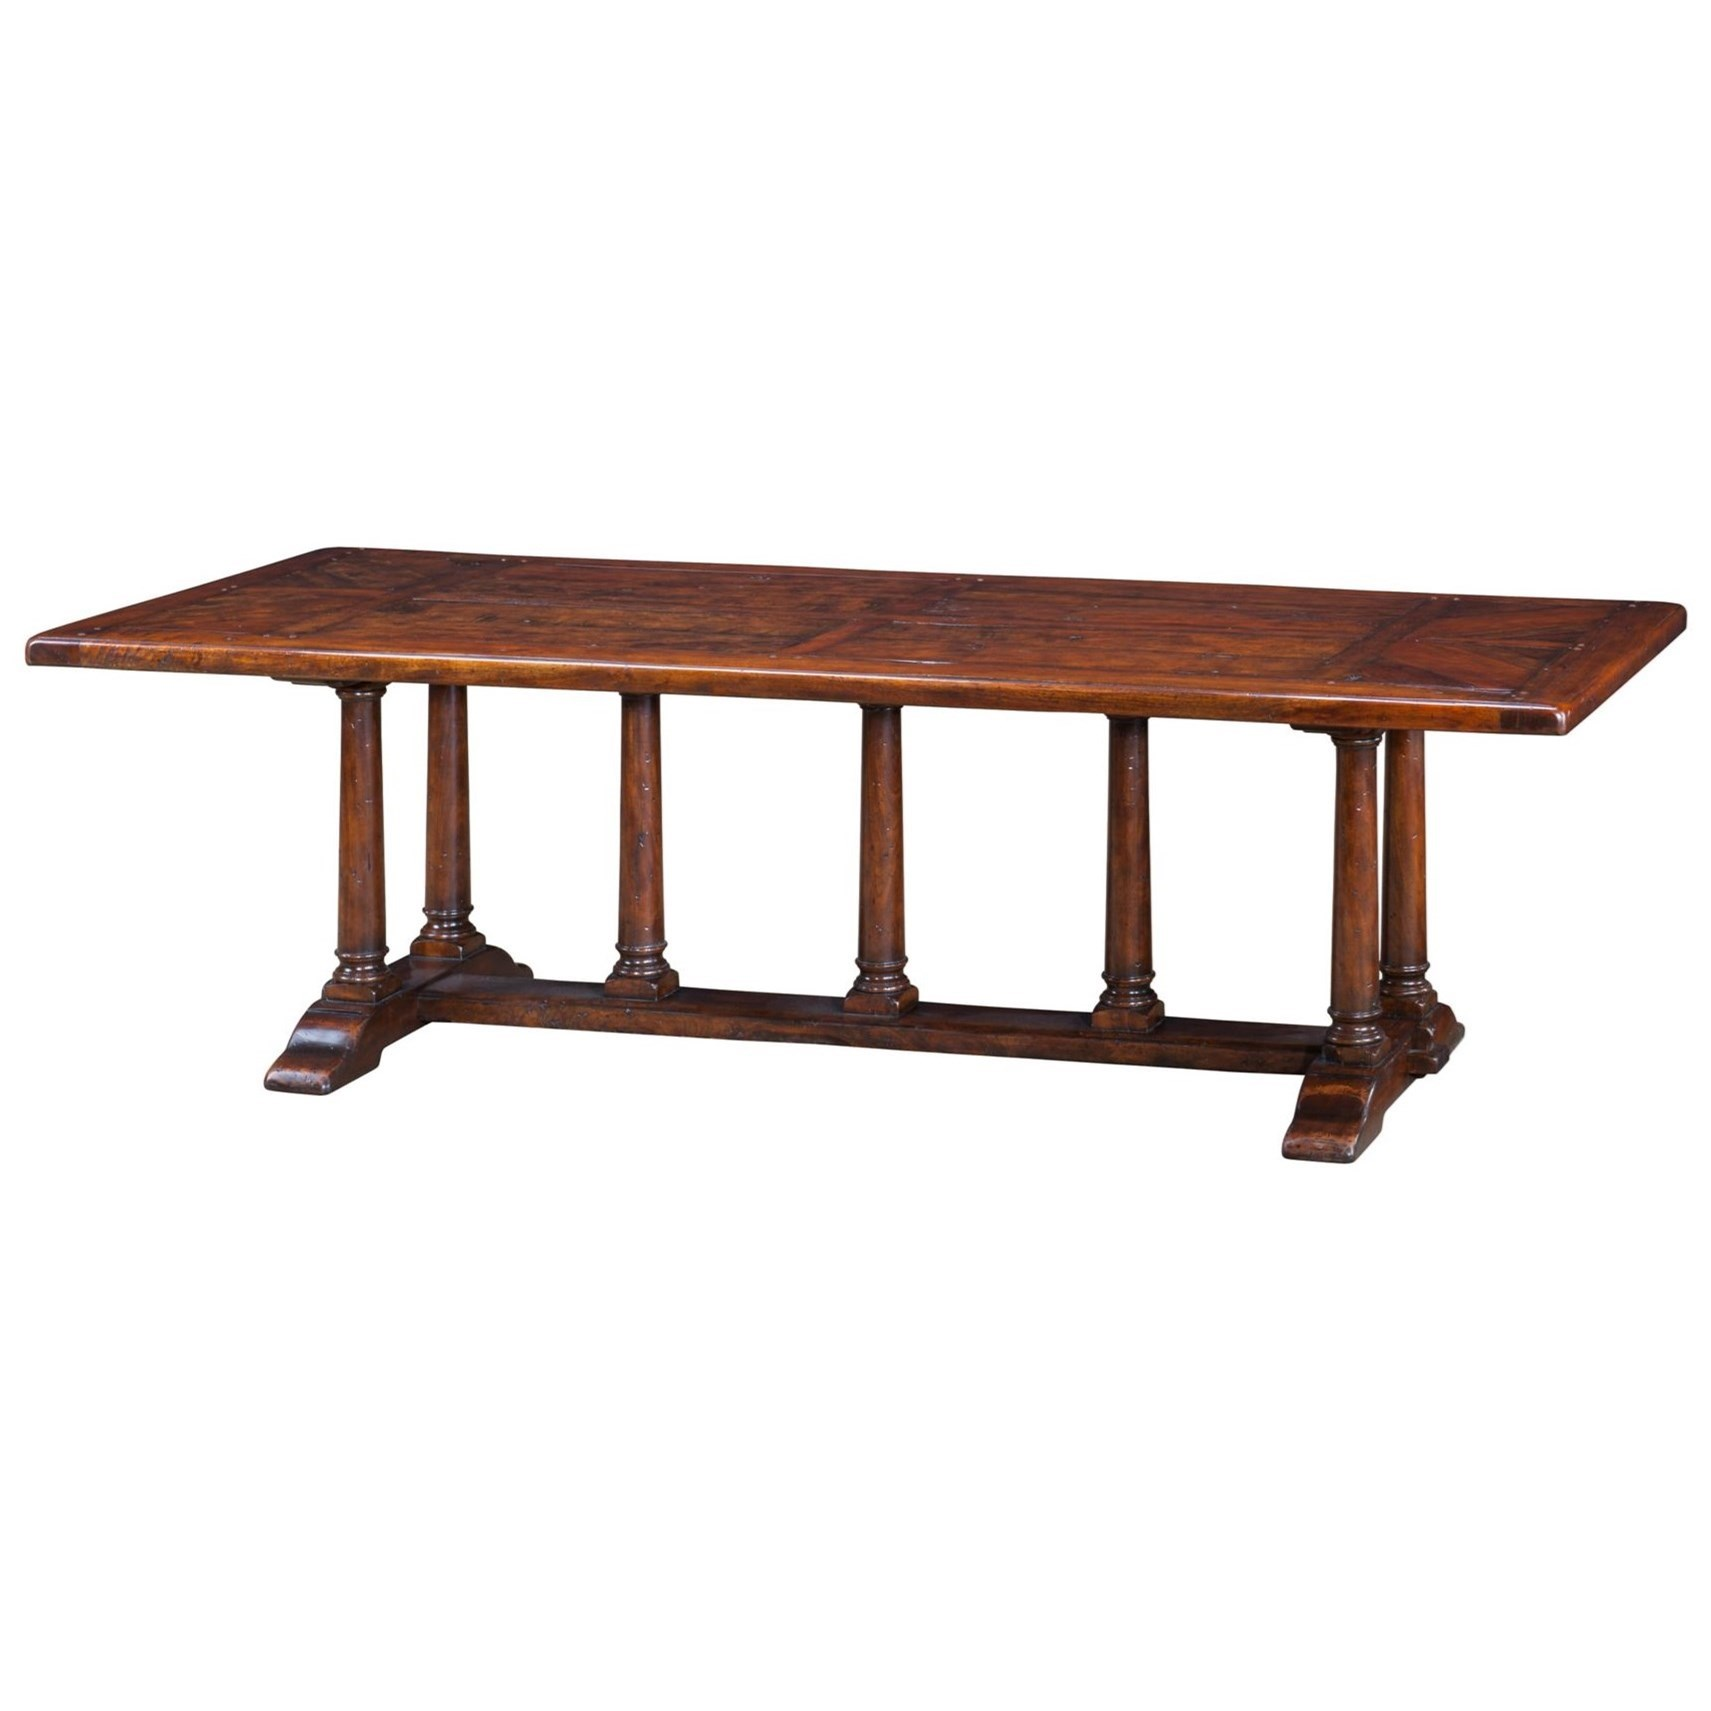 Castle Bromwich A Mellow Classic Dining Table by Theodore Alexander at Baer's Furniture